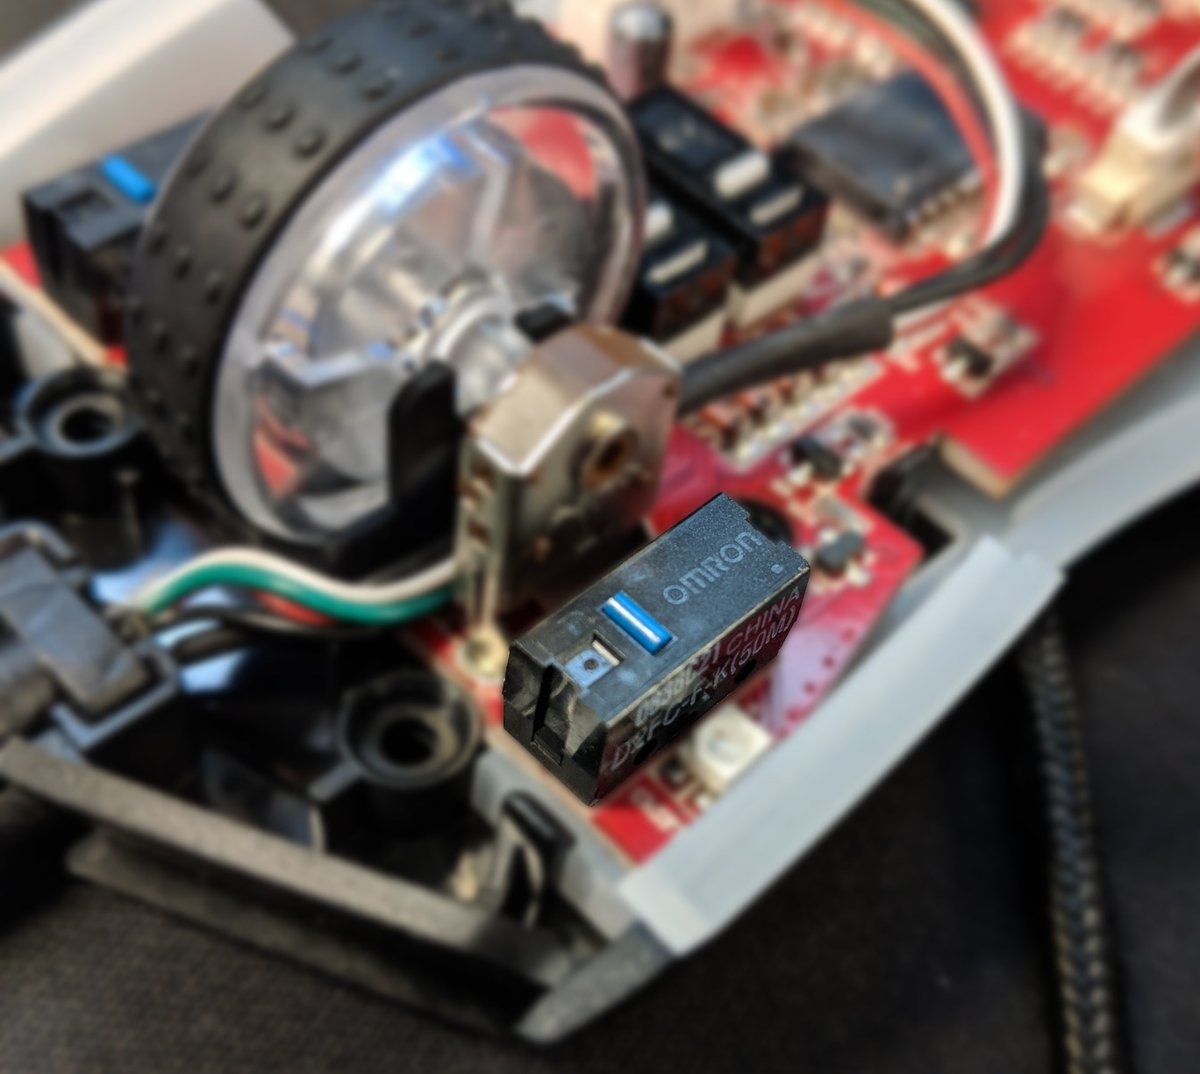 Eluktronics On Twitter We Love The Rgb Our New Luminosa Mouse Best Home Wiring Book Put Stuff Inside Including Omeron Switches Rated For 50 Million Clicks Esports Mousepic 0bwg0dyqey